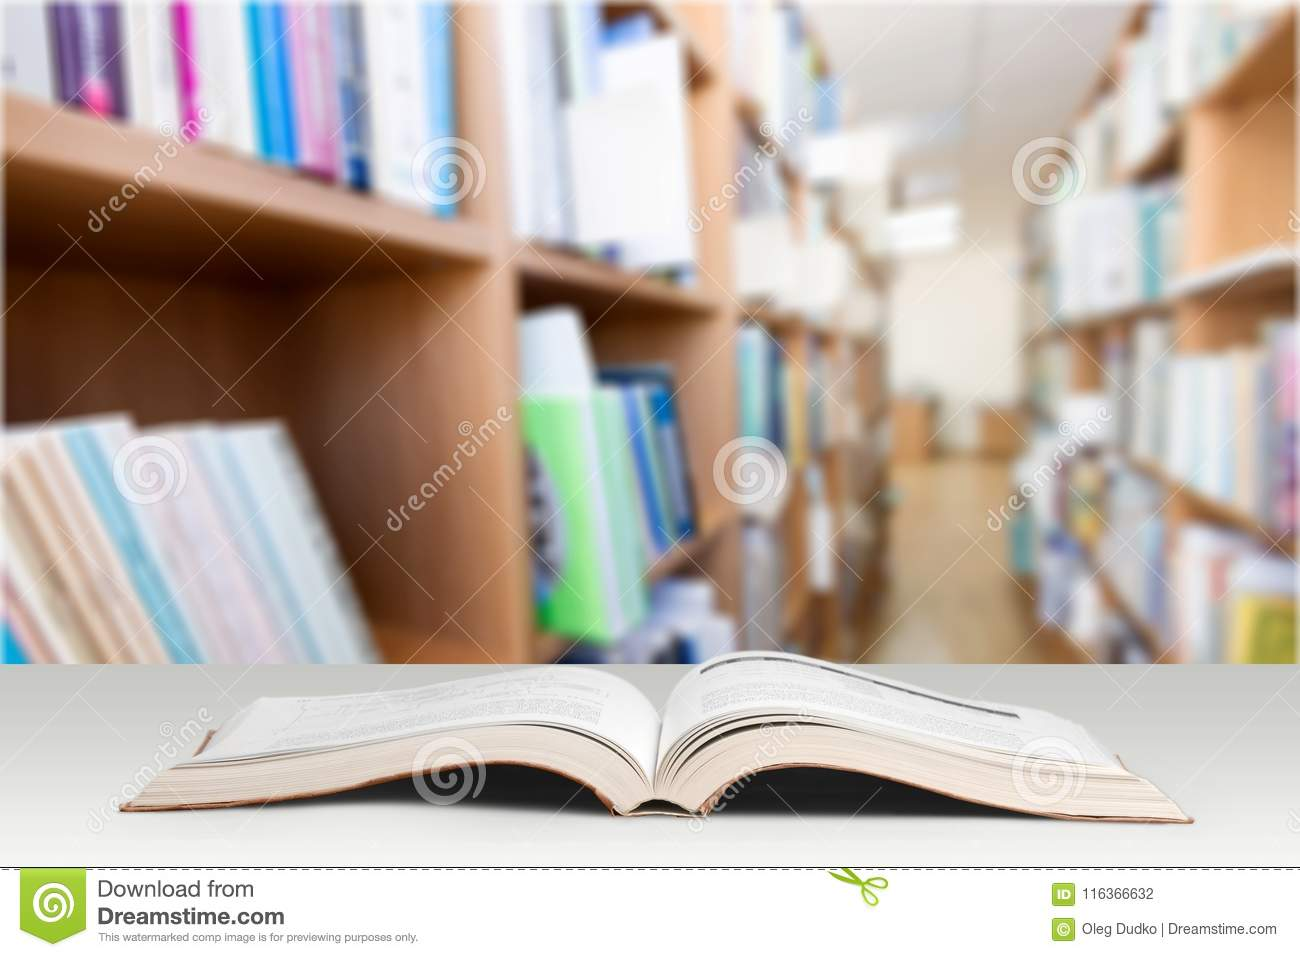 Book Open Studying Literature Wallpaper Wisdom Spark